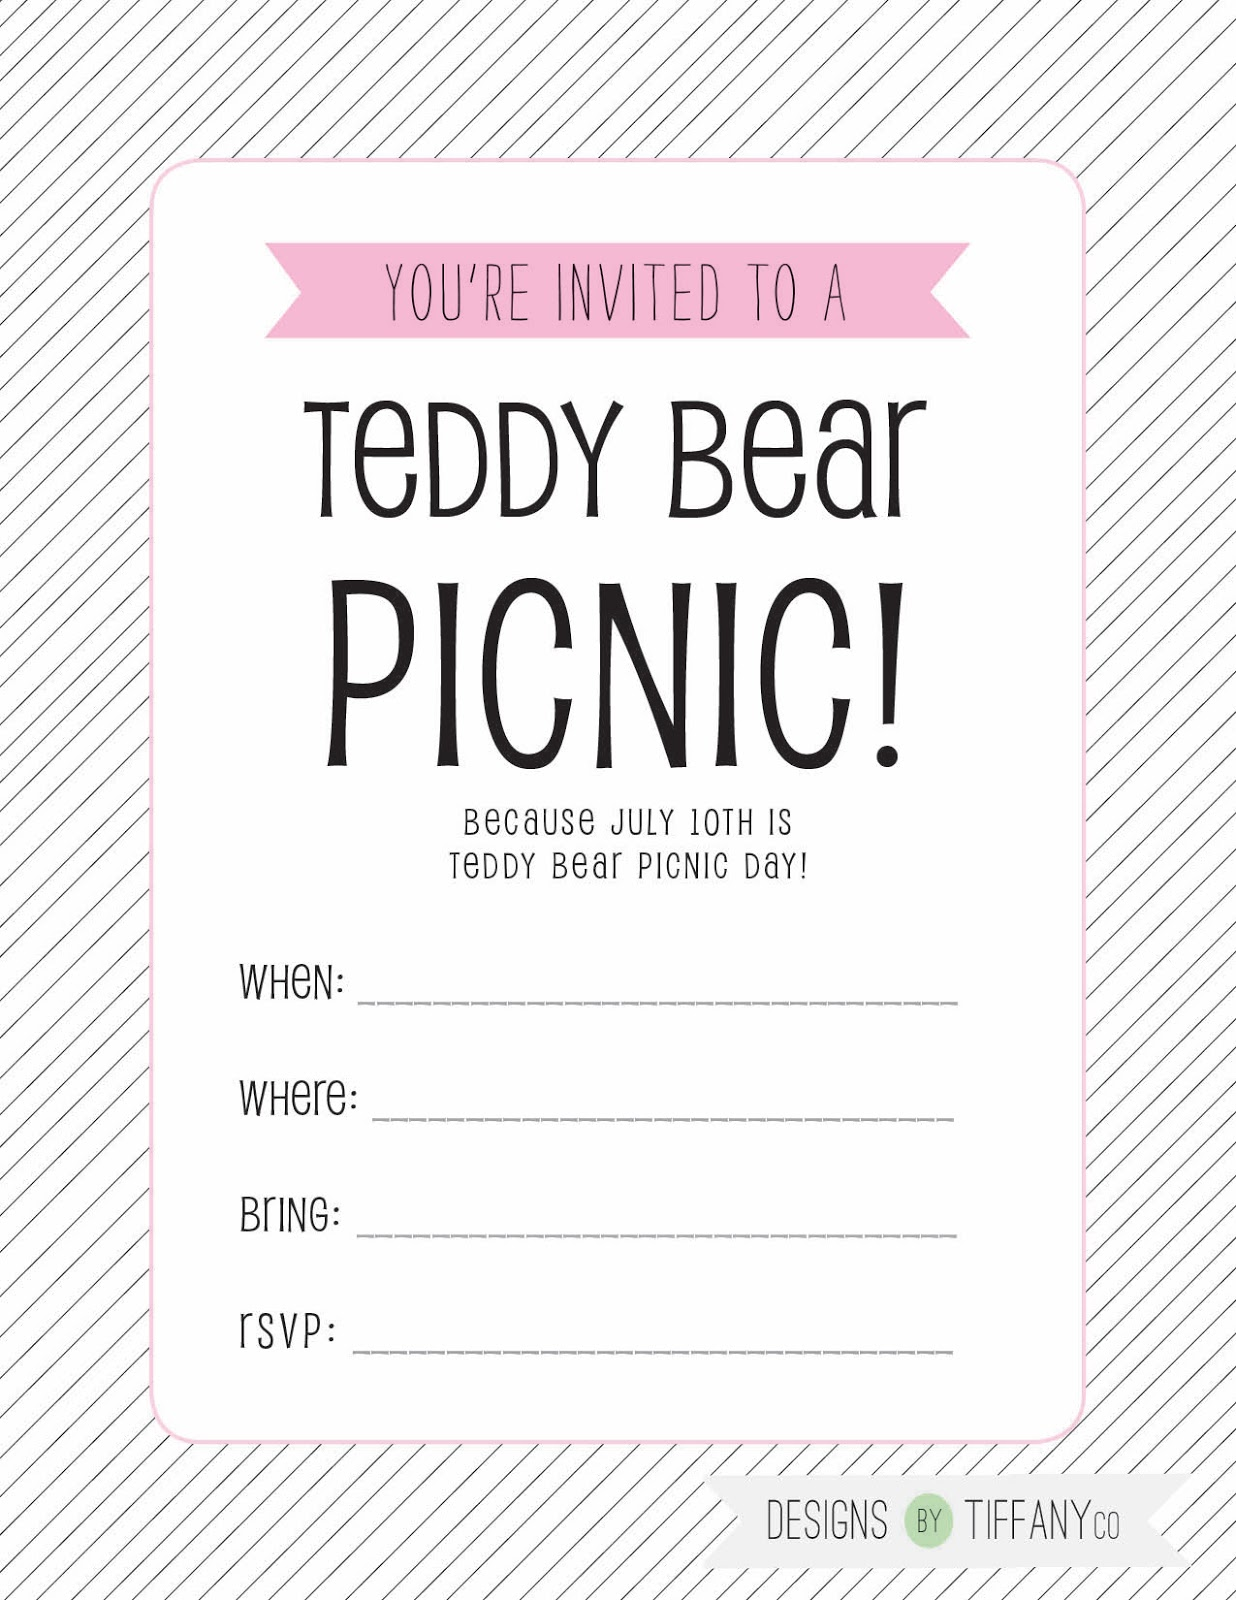 July 10th is Teddy Bear Picnic Day! + Free printables